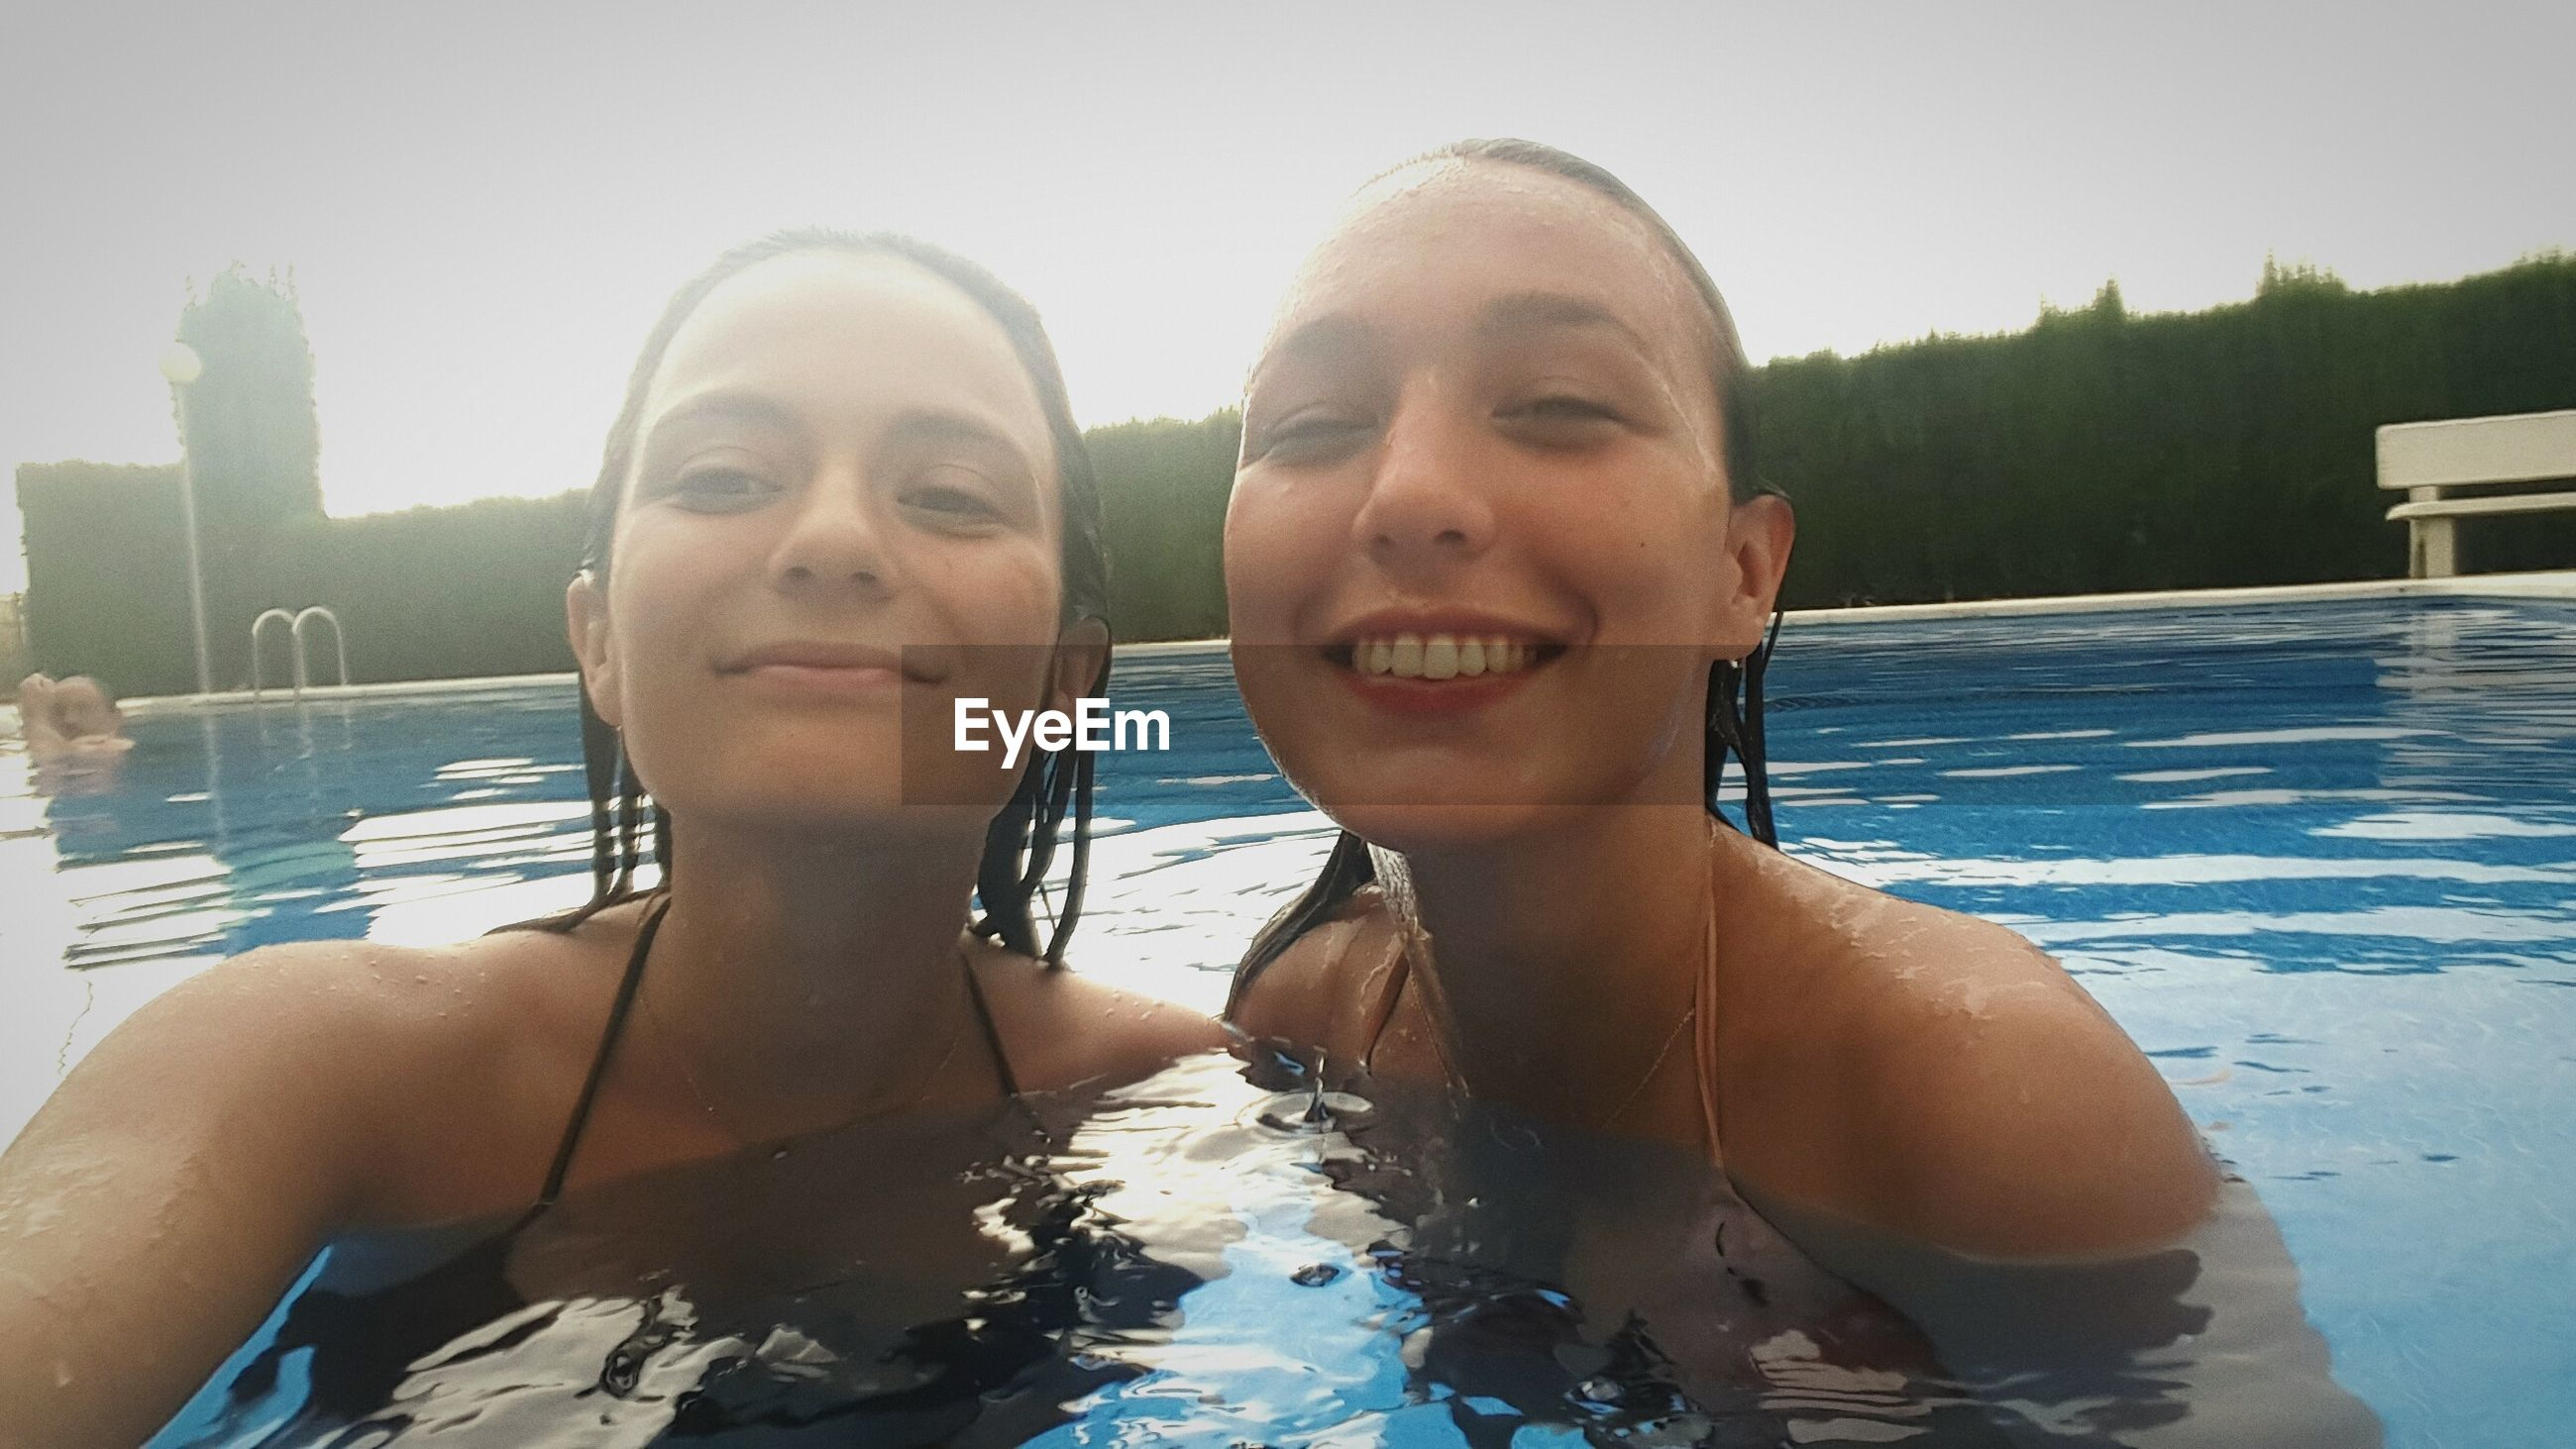 water, swimming pool, leisure activity, real people, togetherness, two people, day, young women, outdoors, lifestyles, vacations, looking at camera, young adult, headshot, smiling, sunlight, happiness, swimming, summer, portrait, bonding, sky, nature, childhood, close-up